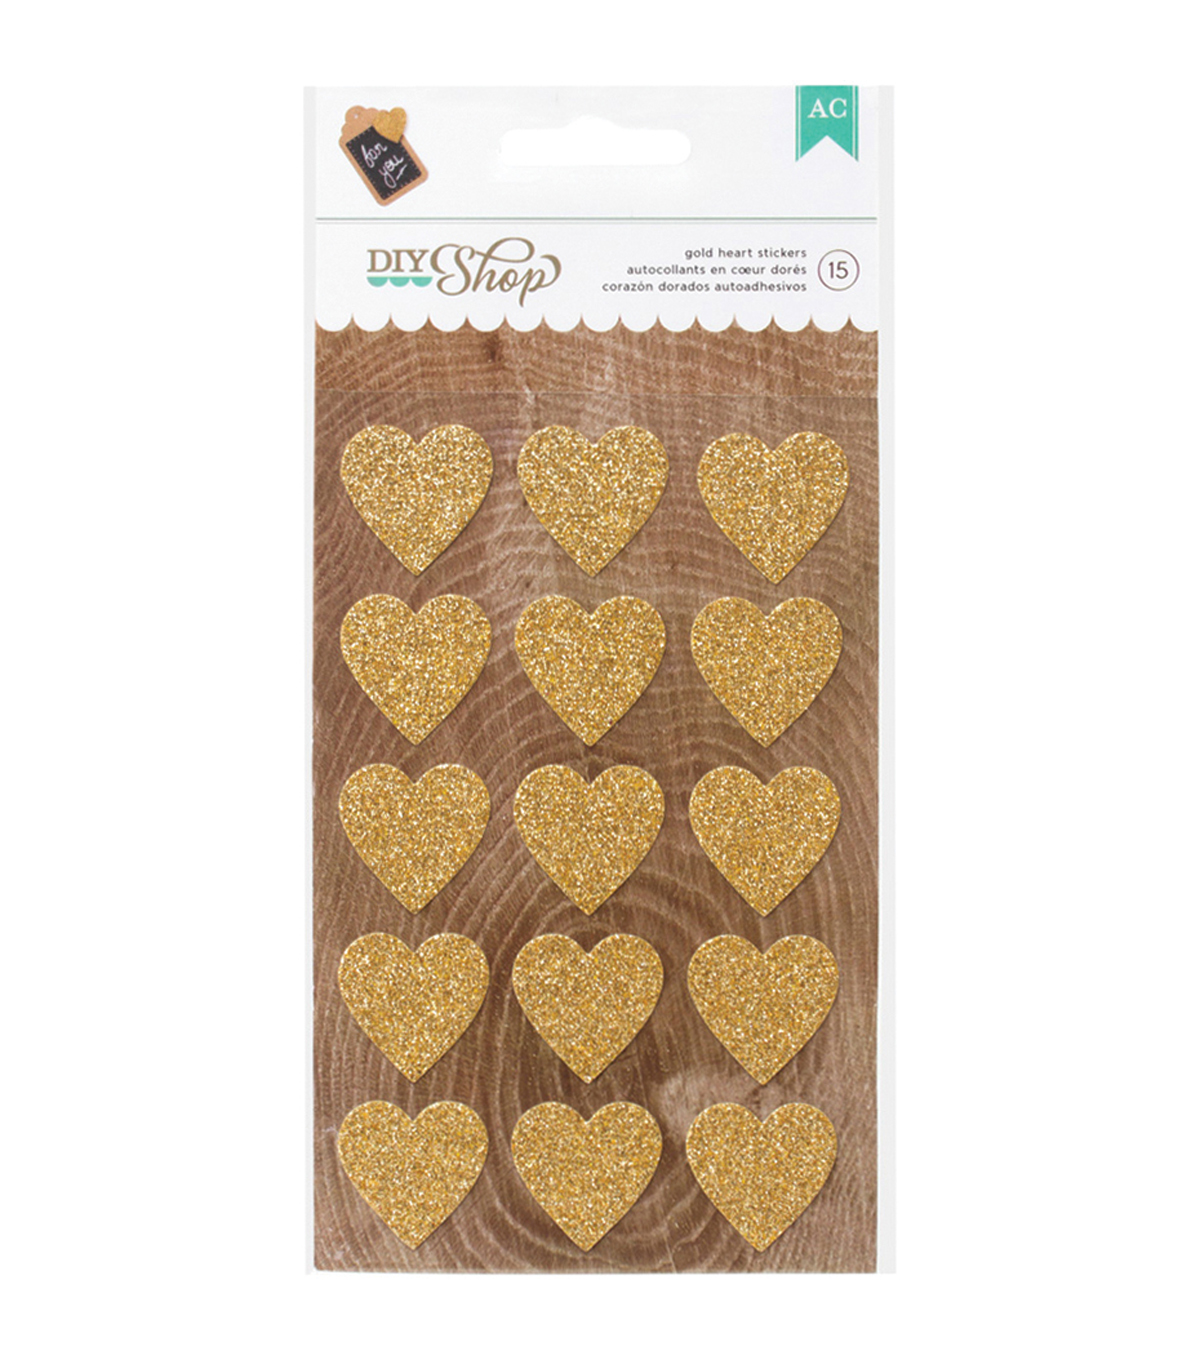 American Crafts DIY Shop 2 Gold Hearts Glitter Stickers